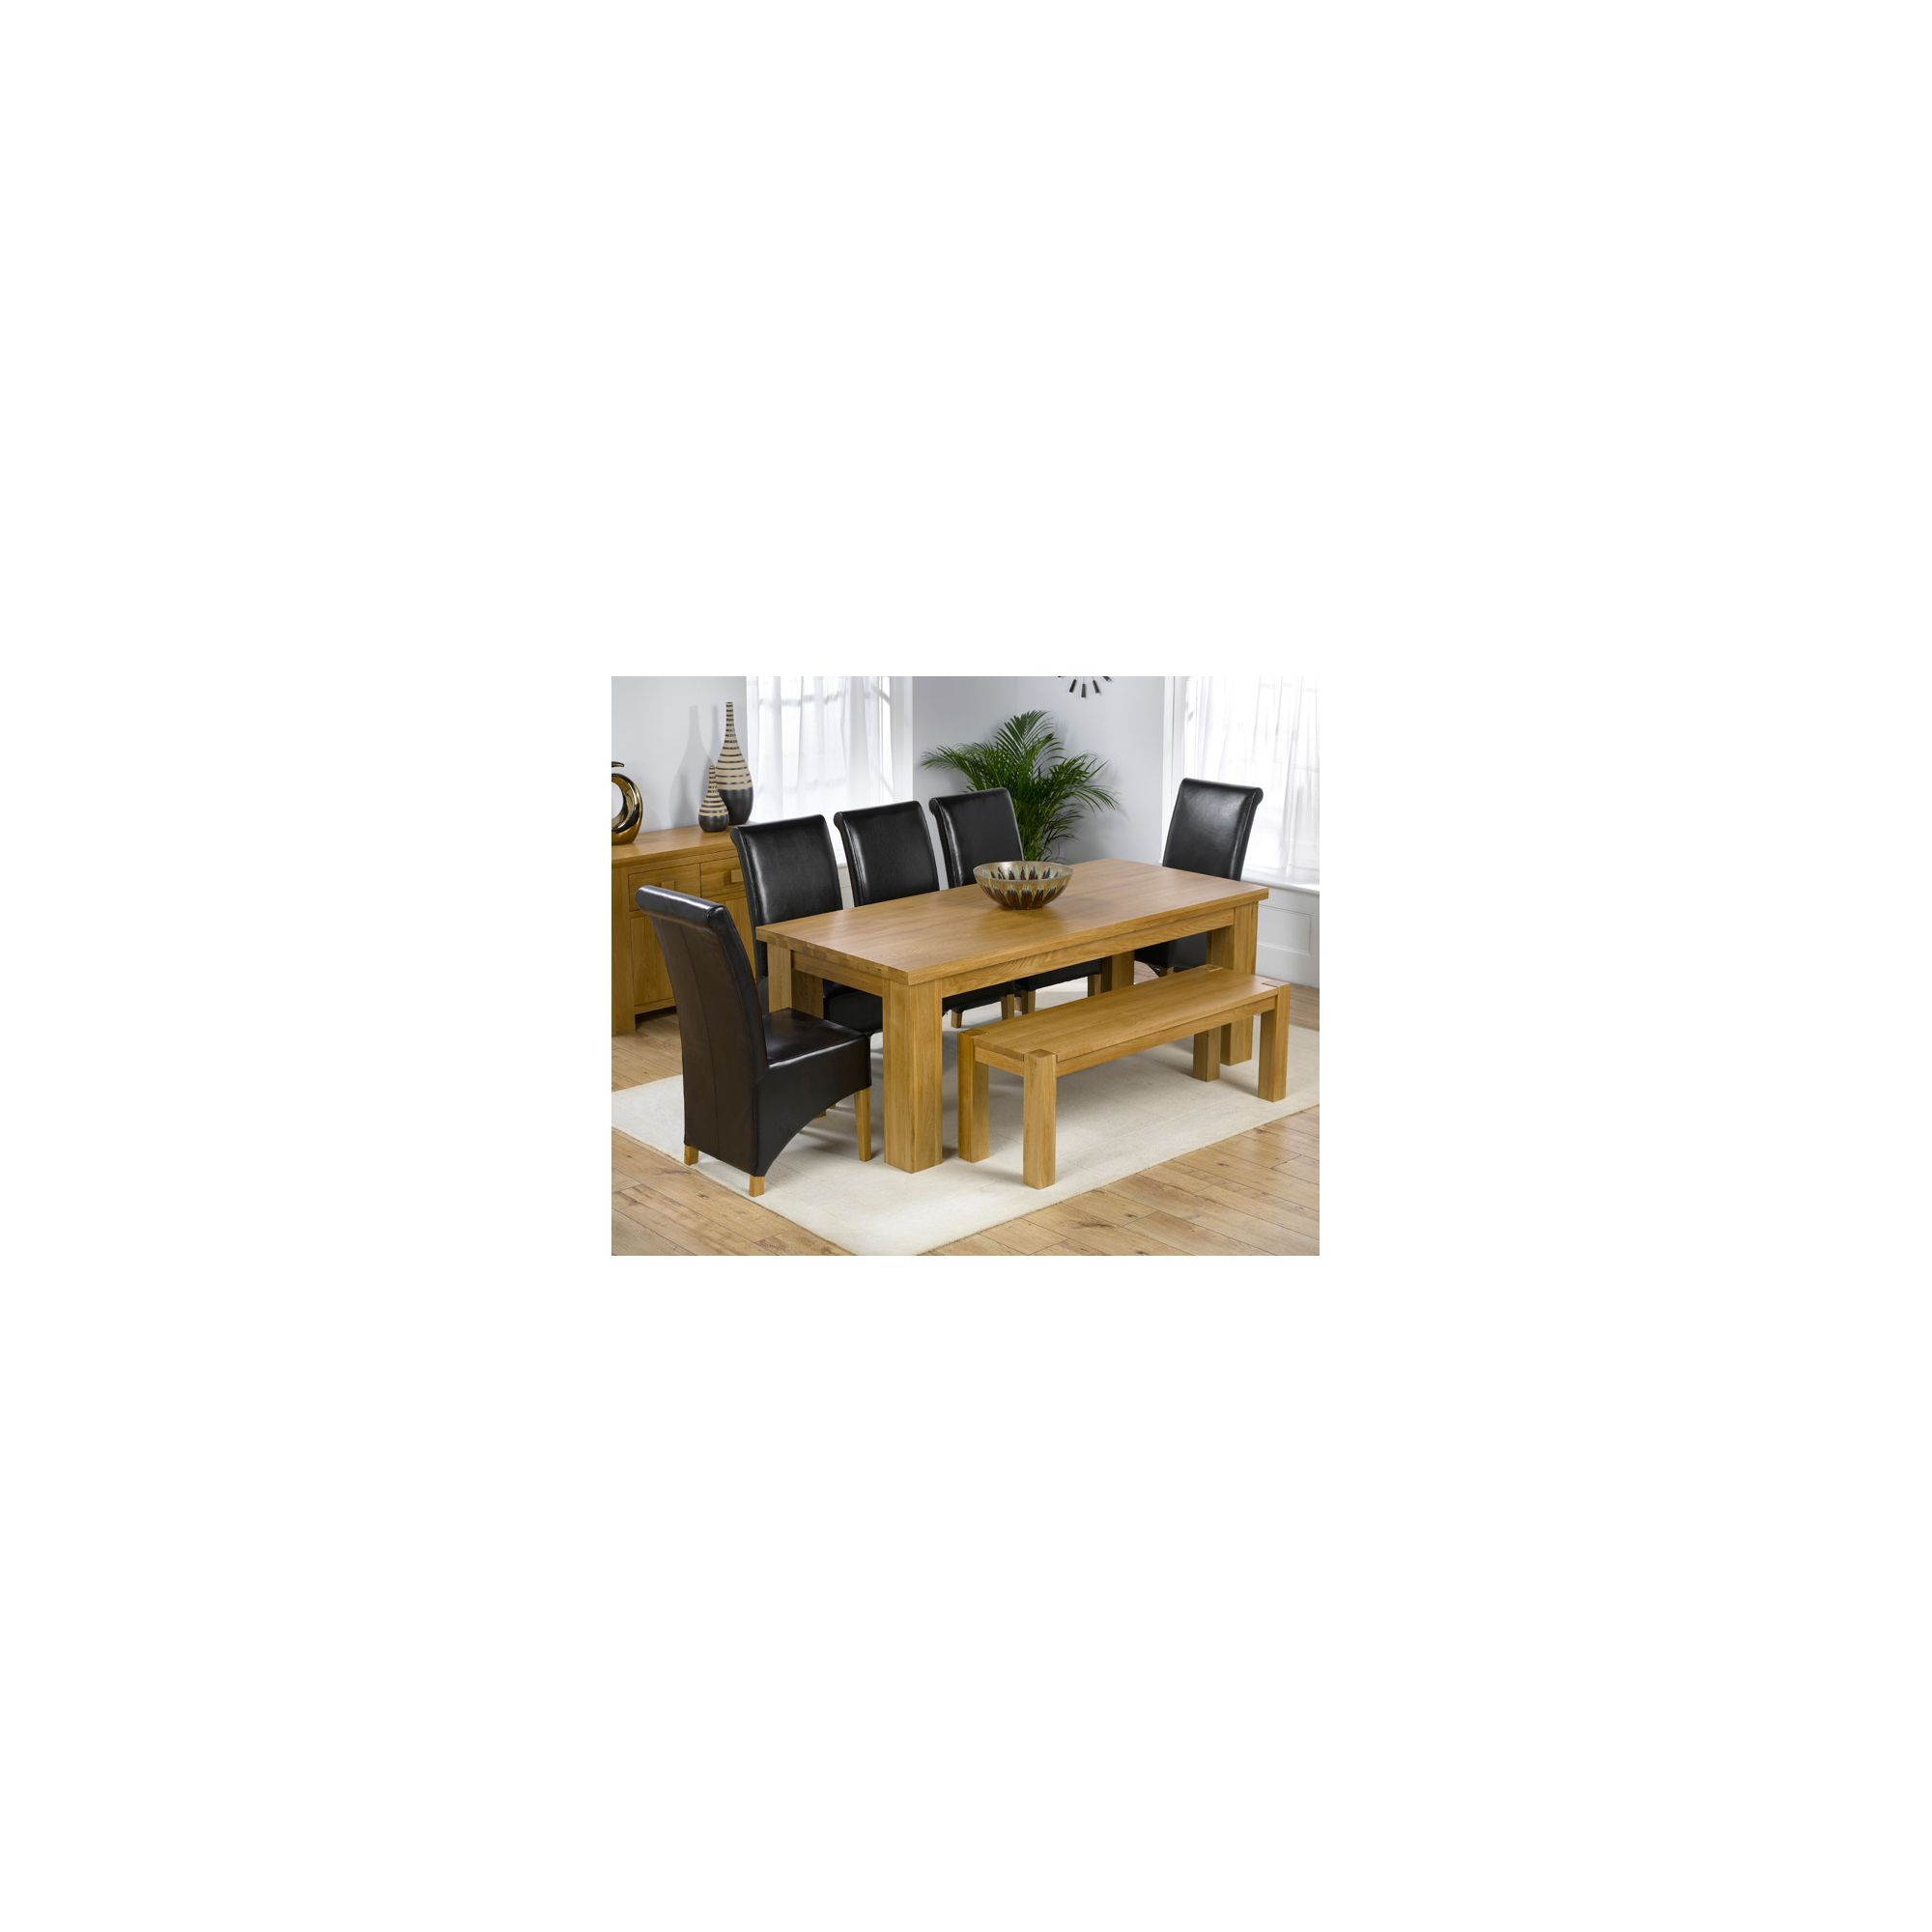 Mark Harris Furniture Barcelona Solid Oak Dining Table with Barcelona Chairs and Barcelona Bench